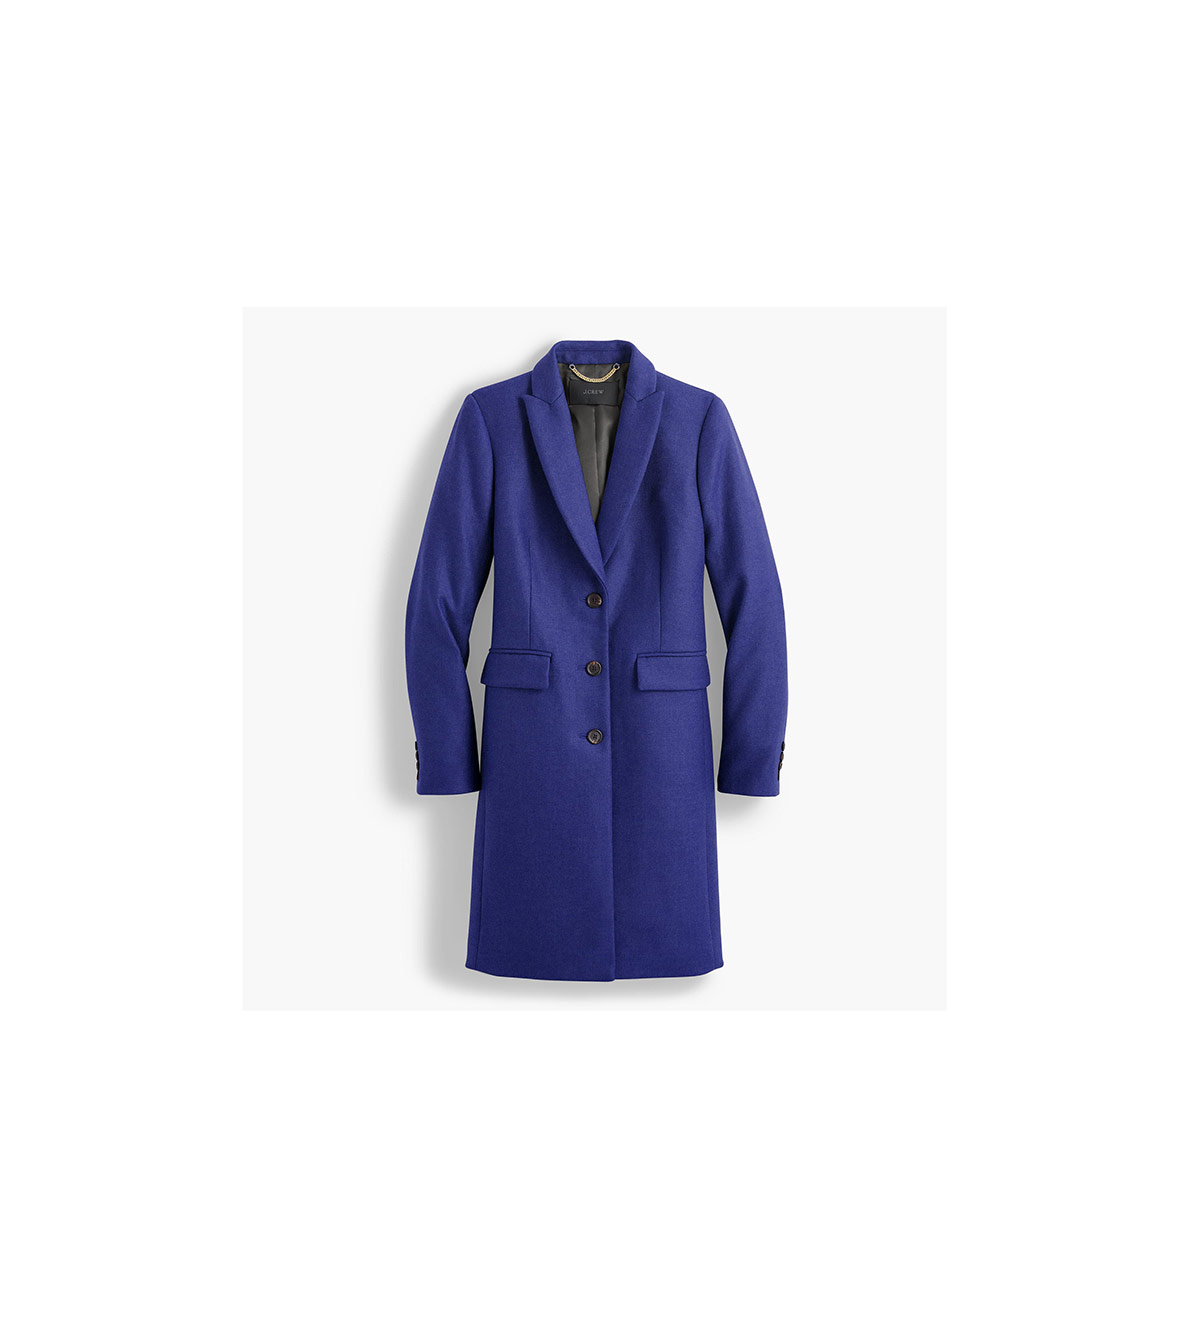 08a1d235cb Ward off the wind chill with this wool coat. The sophisticated silhouette  makes it a must-have if you're in need of everyday office outerwear.